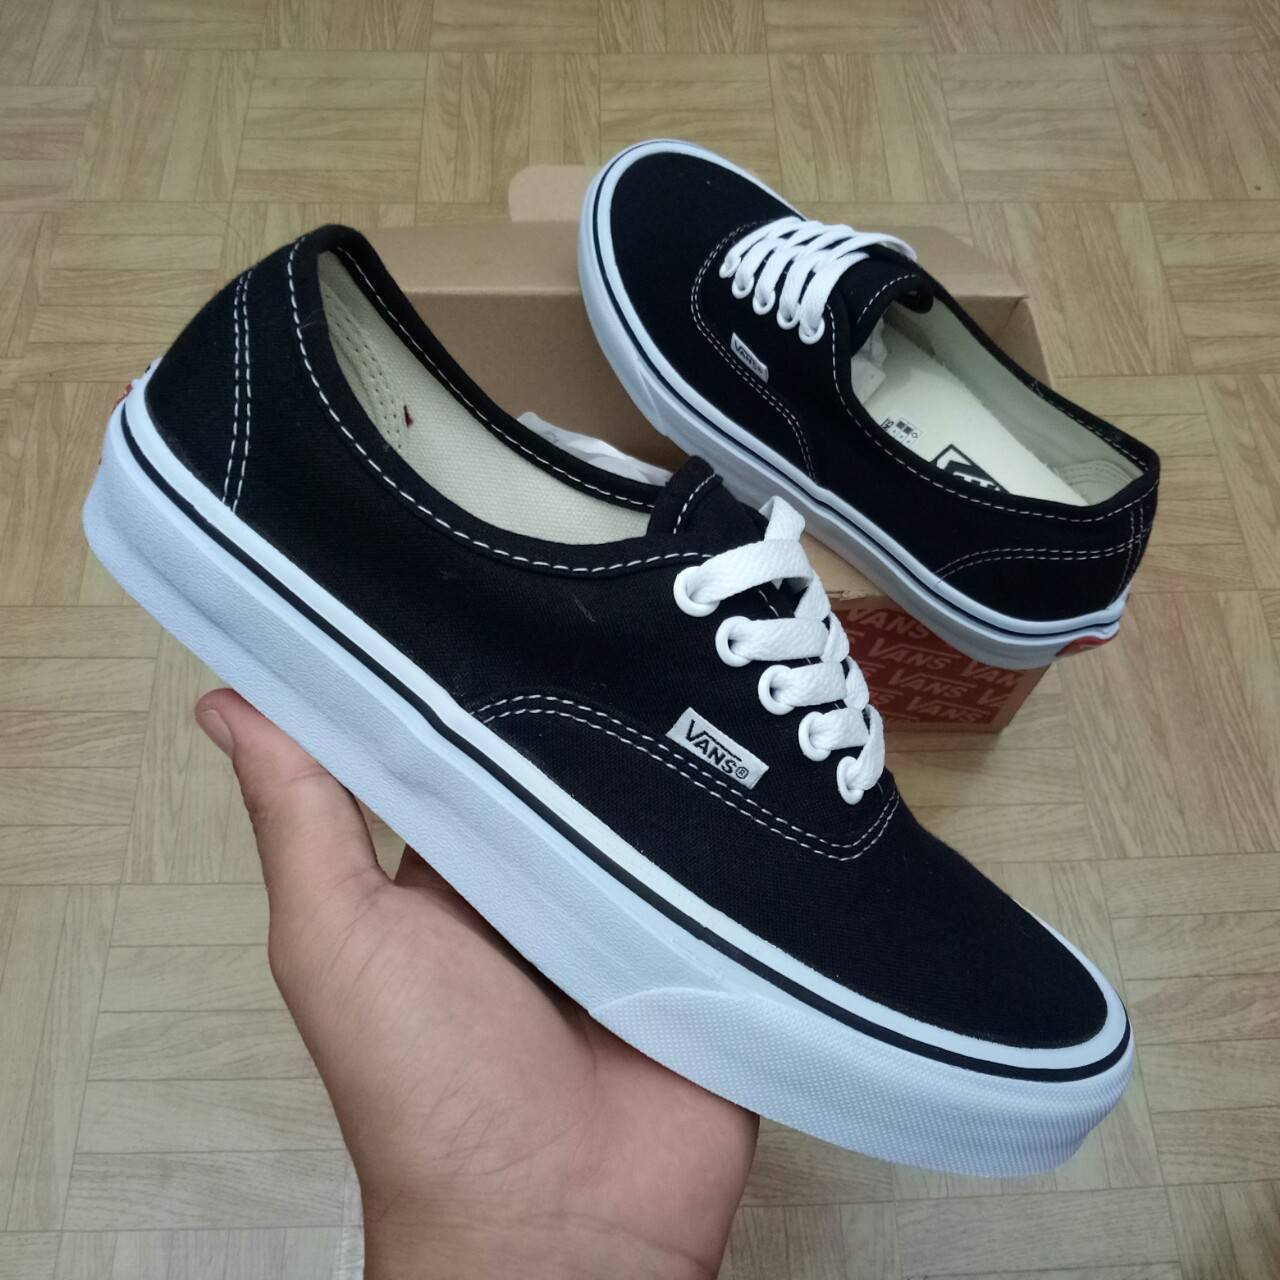 SEPATU VANS AUTHENTIC BLACK WHITE PREMIUM WAFFLE DT BNIB (Brand New In Box)  FULL TAG BARCODE MADE IN CHINA 7e1c0e4599